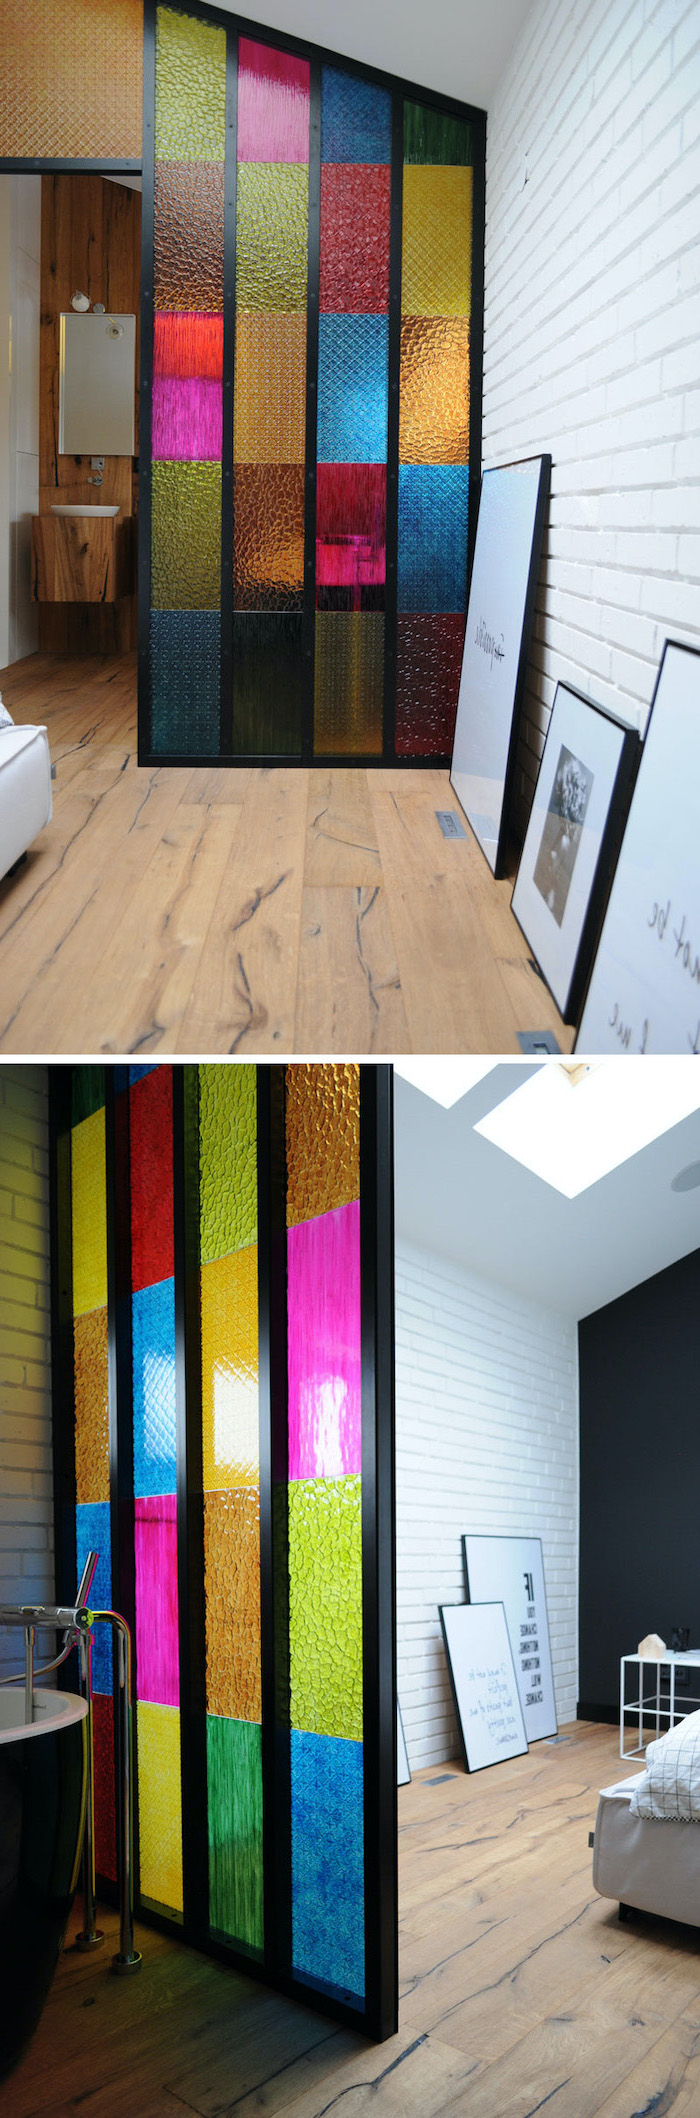 room divider with colored glass, placed between bathroom and bedroom, antique stained glass windows, white brick walls